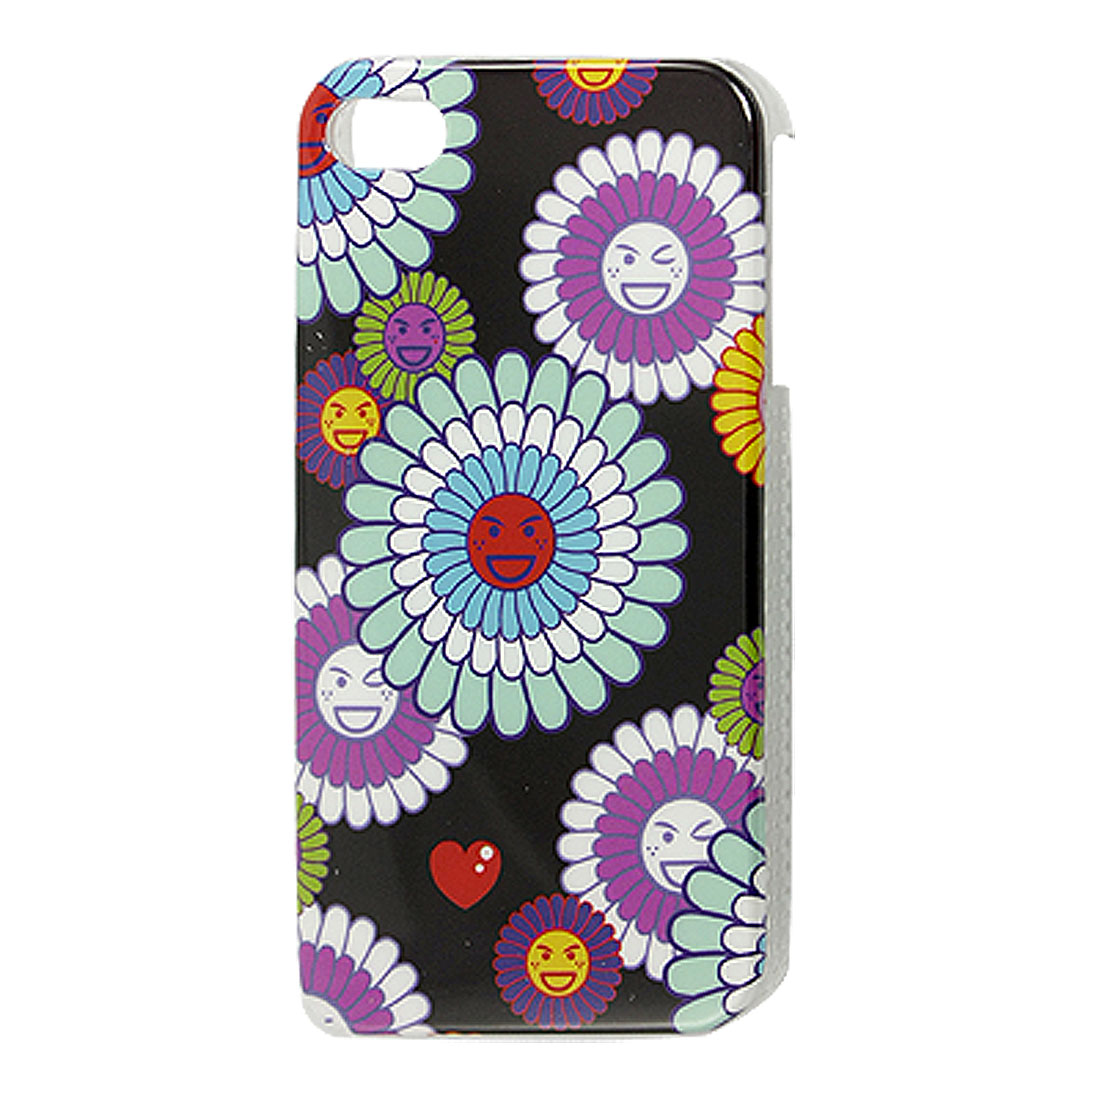 Sunflower Pattern Hard Plastic Back Case Cover for iPhone 4 4G 4S